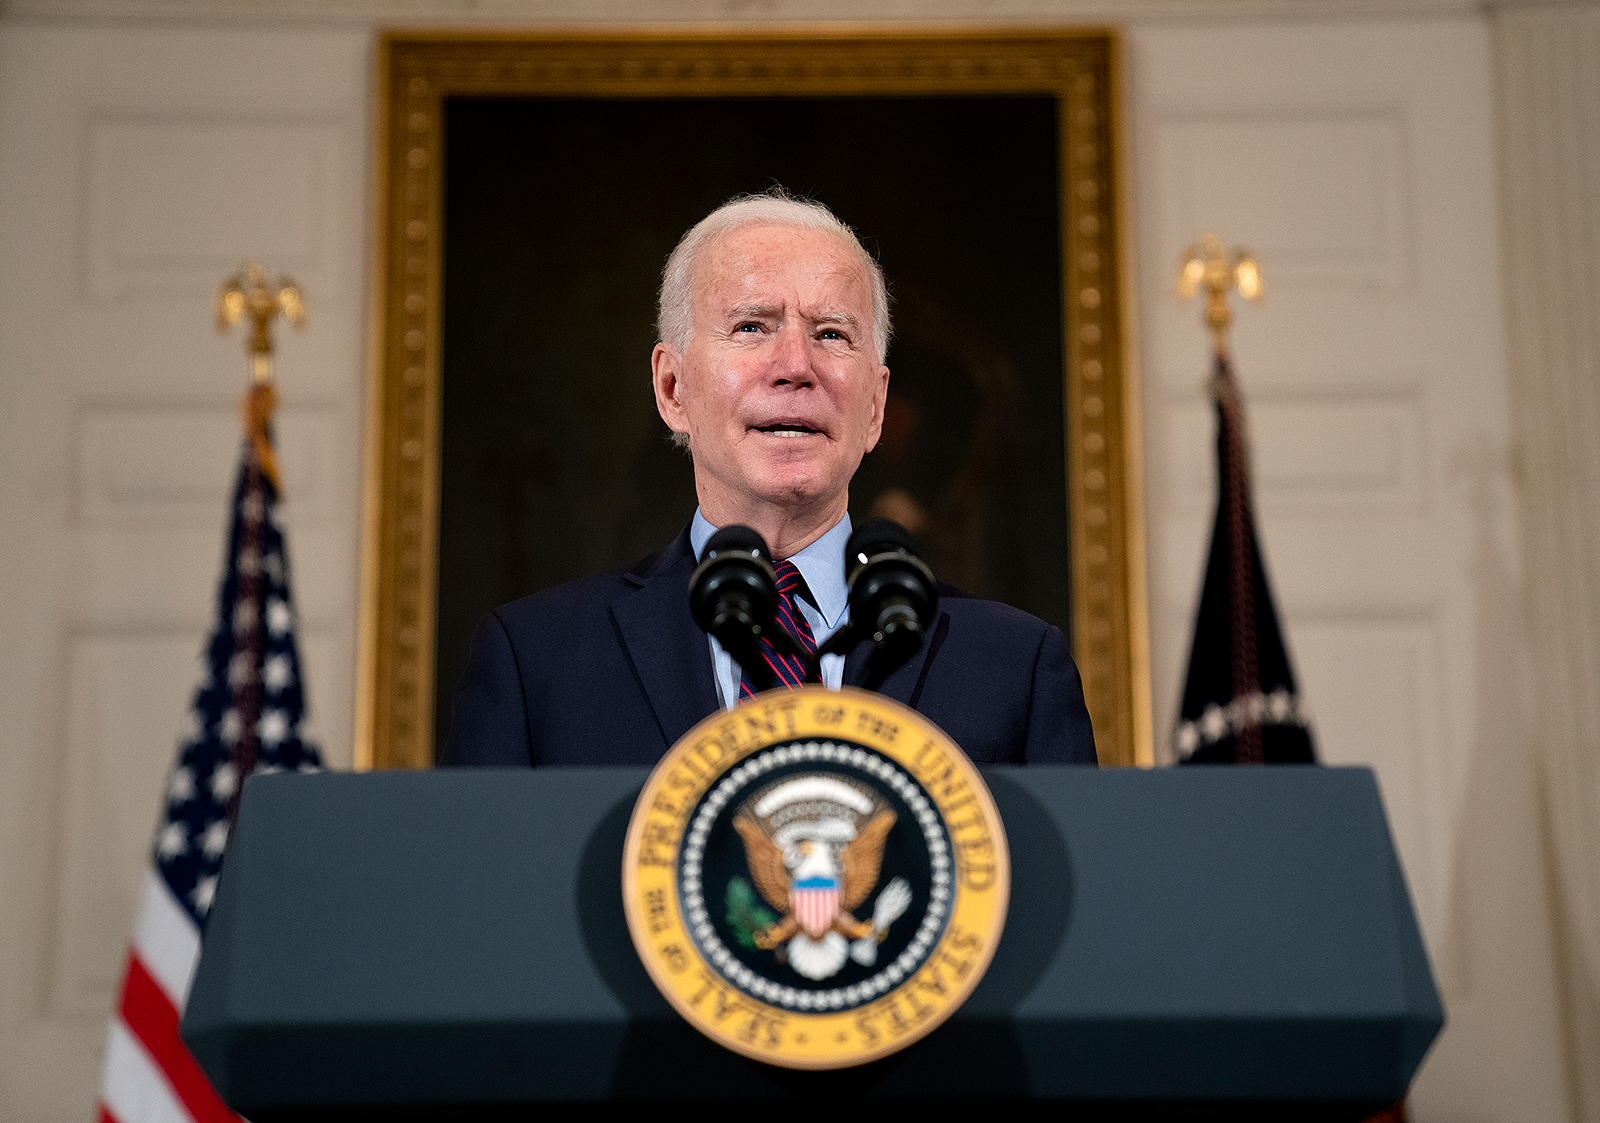 US President Joe Biden delivers remarks at the White House in Washington, DC, on February 5.